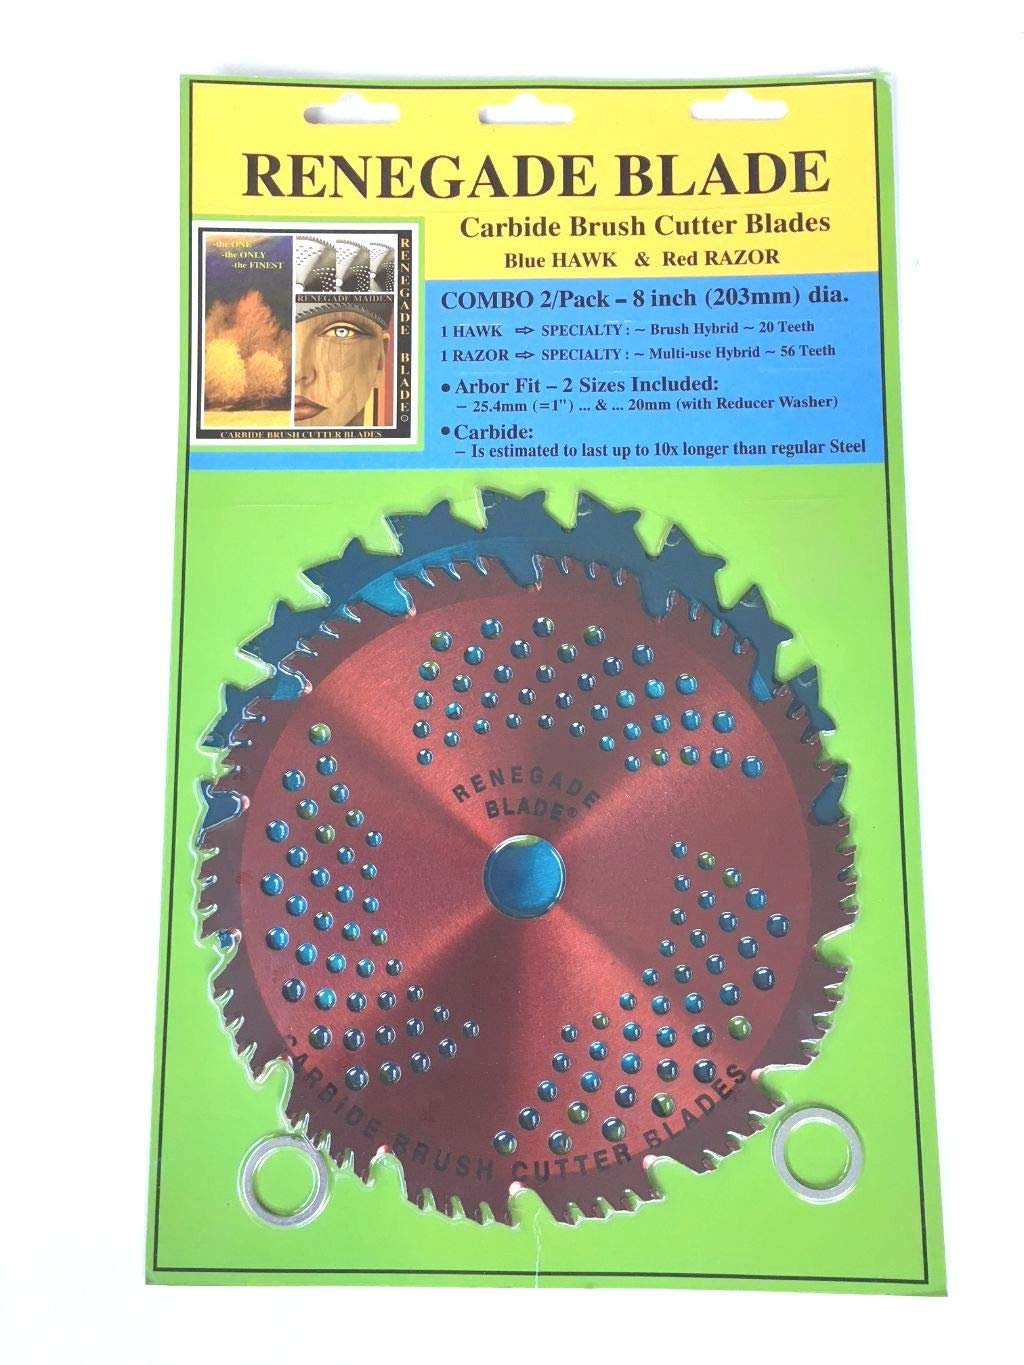 Renegade Blade 2pk-8''-20t/56t Combo Pack - (1) 20 Teeth Blue Hawk (1) 56 Teeth red Razor - Hybrid Pack GS1 Barcoded Shelf Hanging Blister Pack- Carbide Brush Cutter Blades, 203mm Dia.